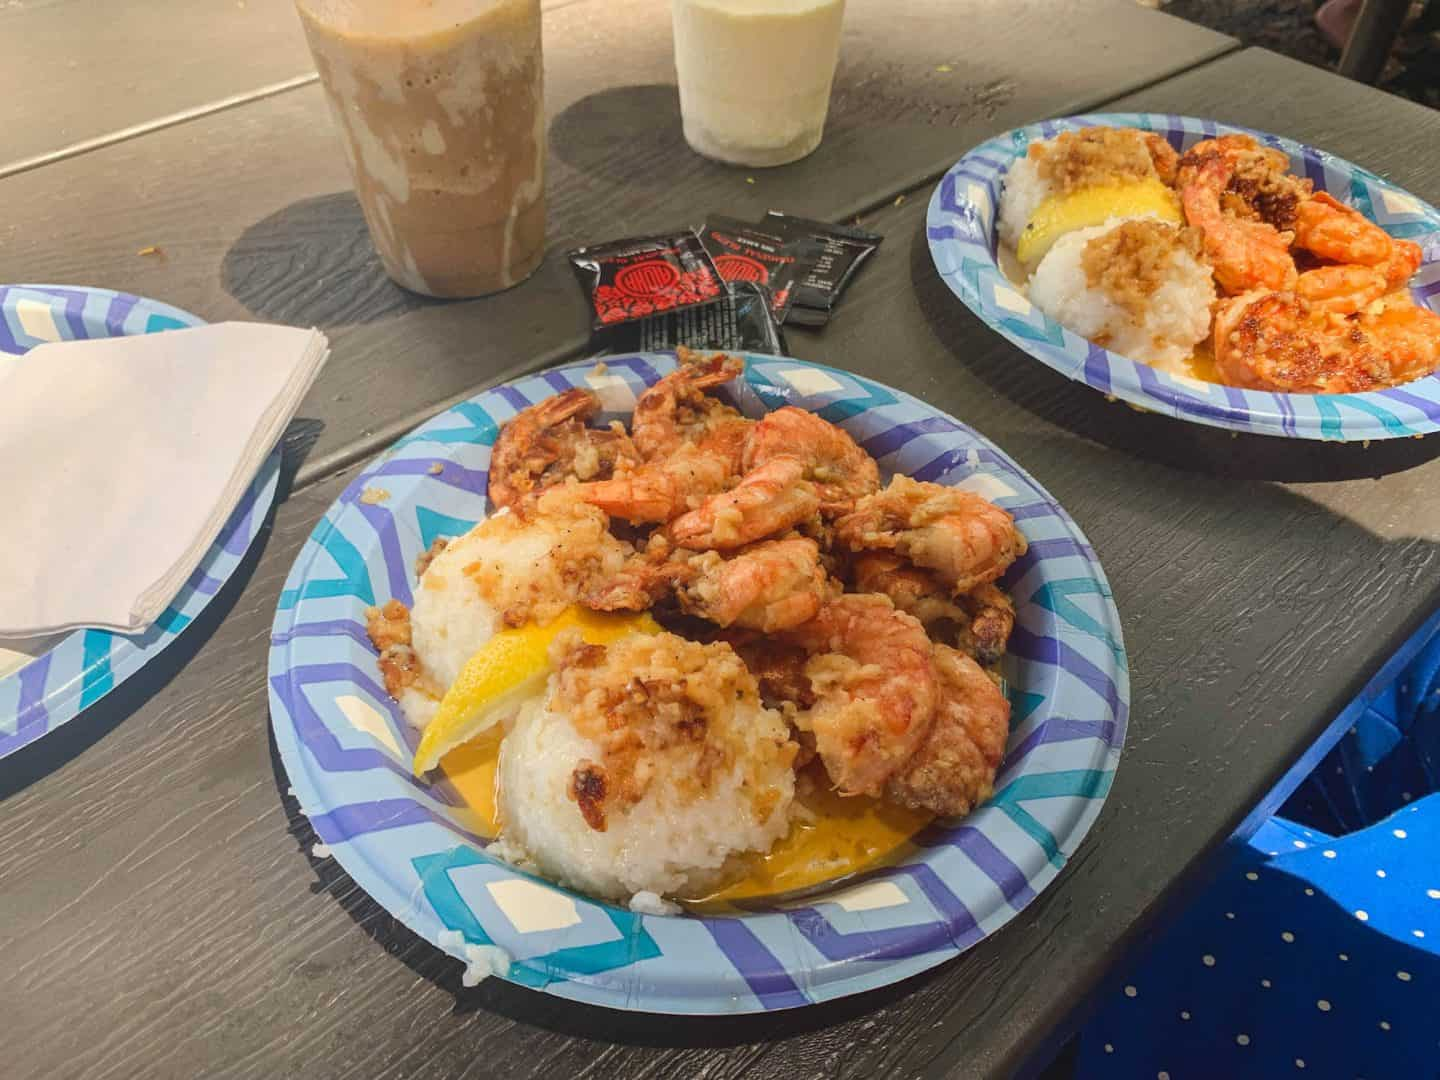 Giovanni's Shrimp Truck is one of the best food spots to add to your Oahu itinerary